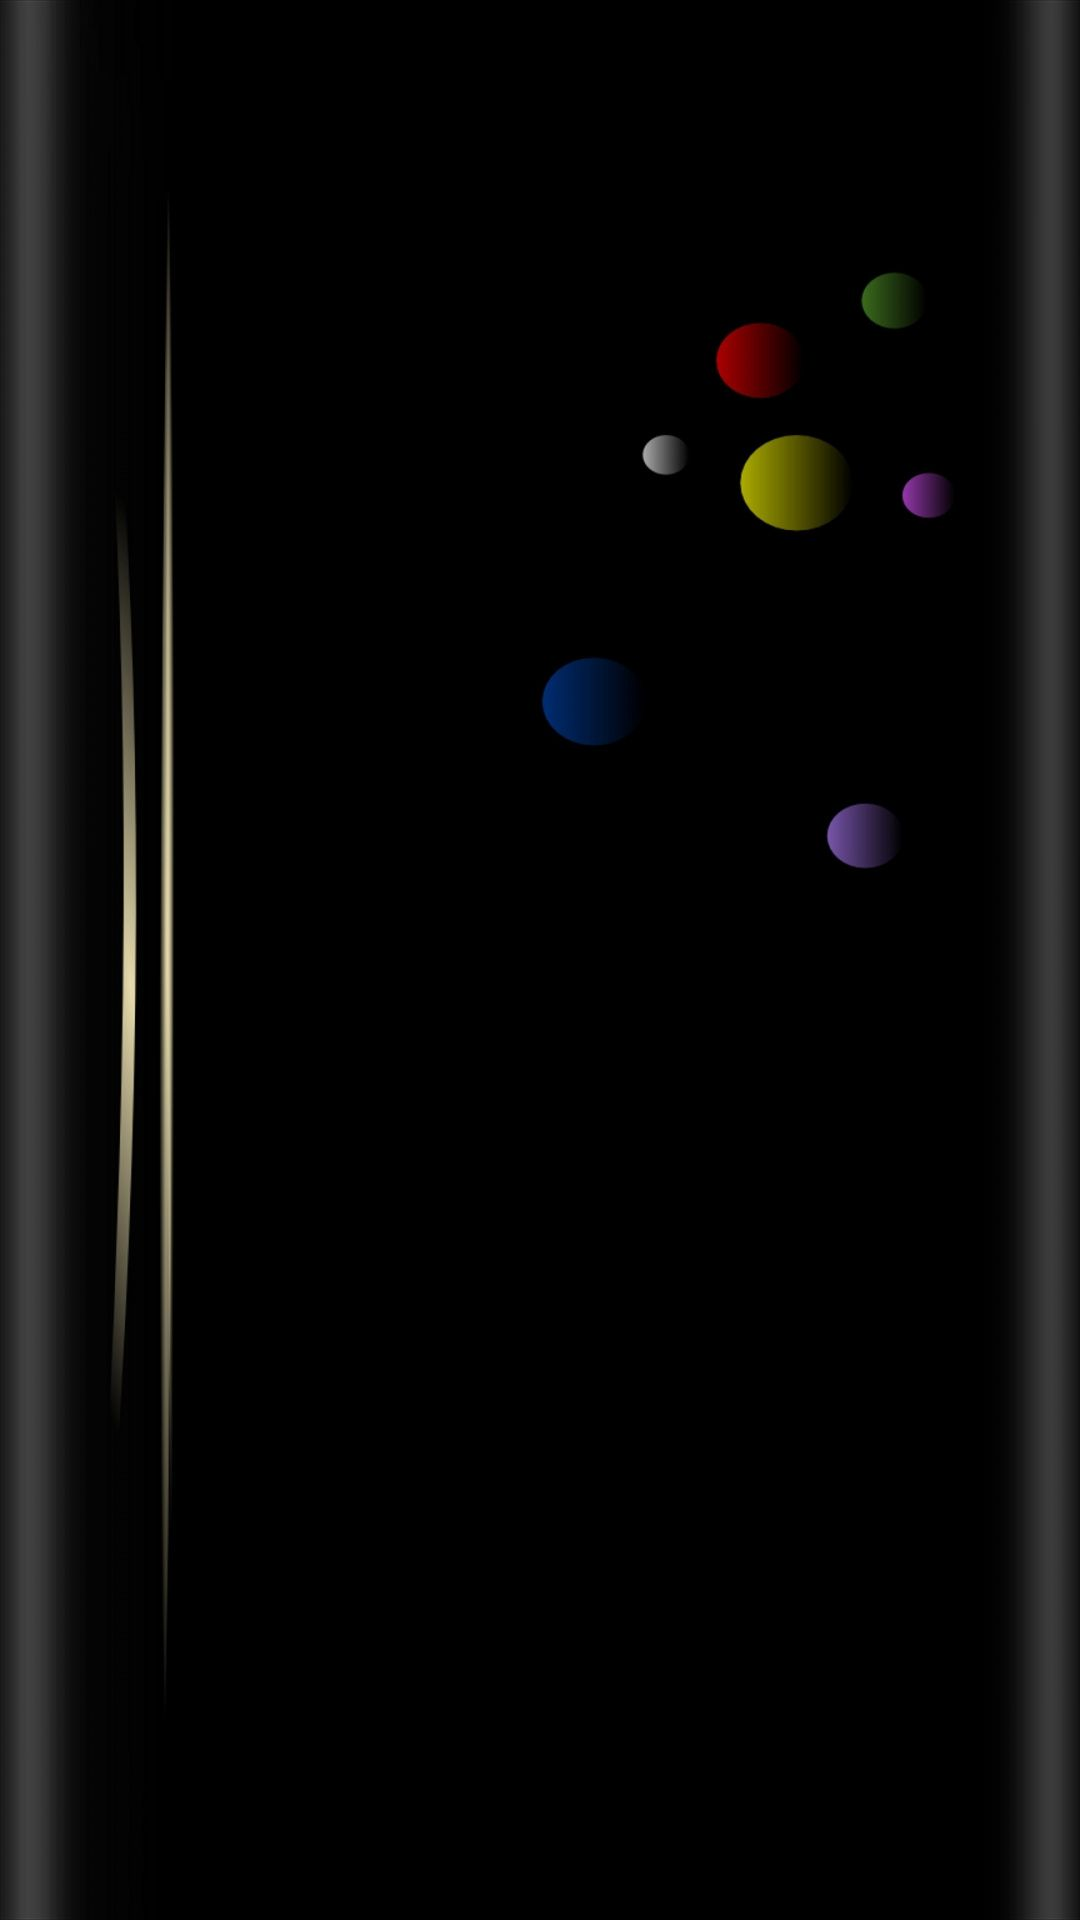 Pin By Coco S On Iphone Wallpaper Xperia Wallpaper Black Hd Wallpaper Iphone Android Wallpaper Abstract